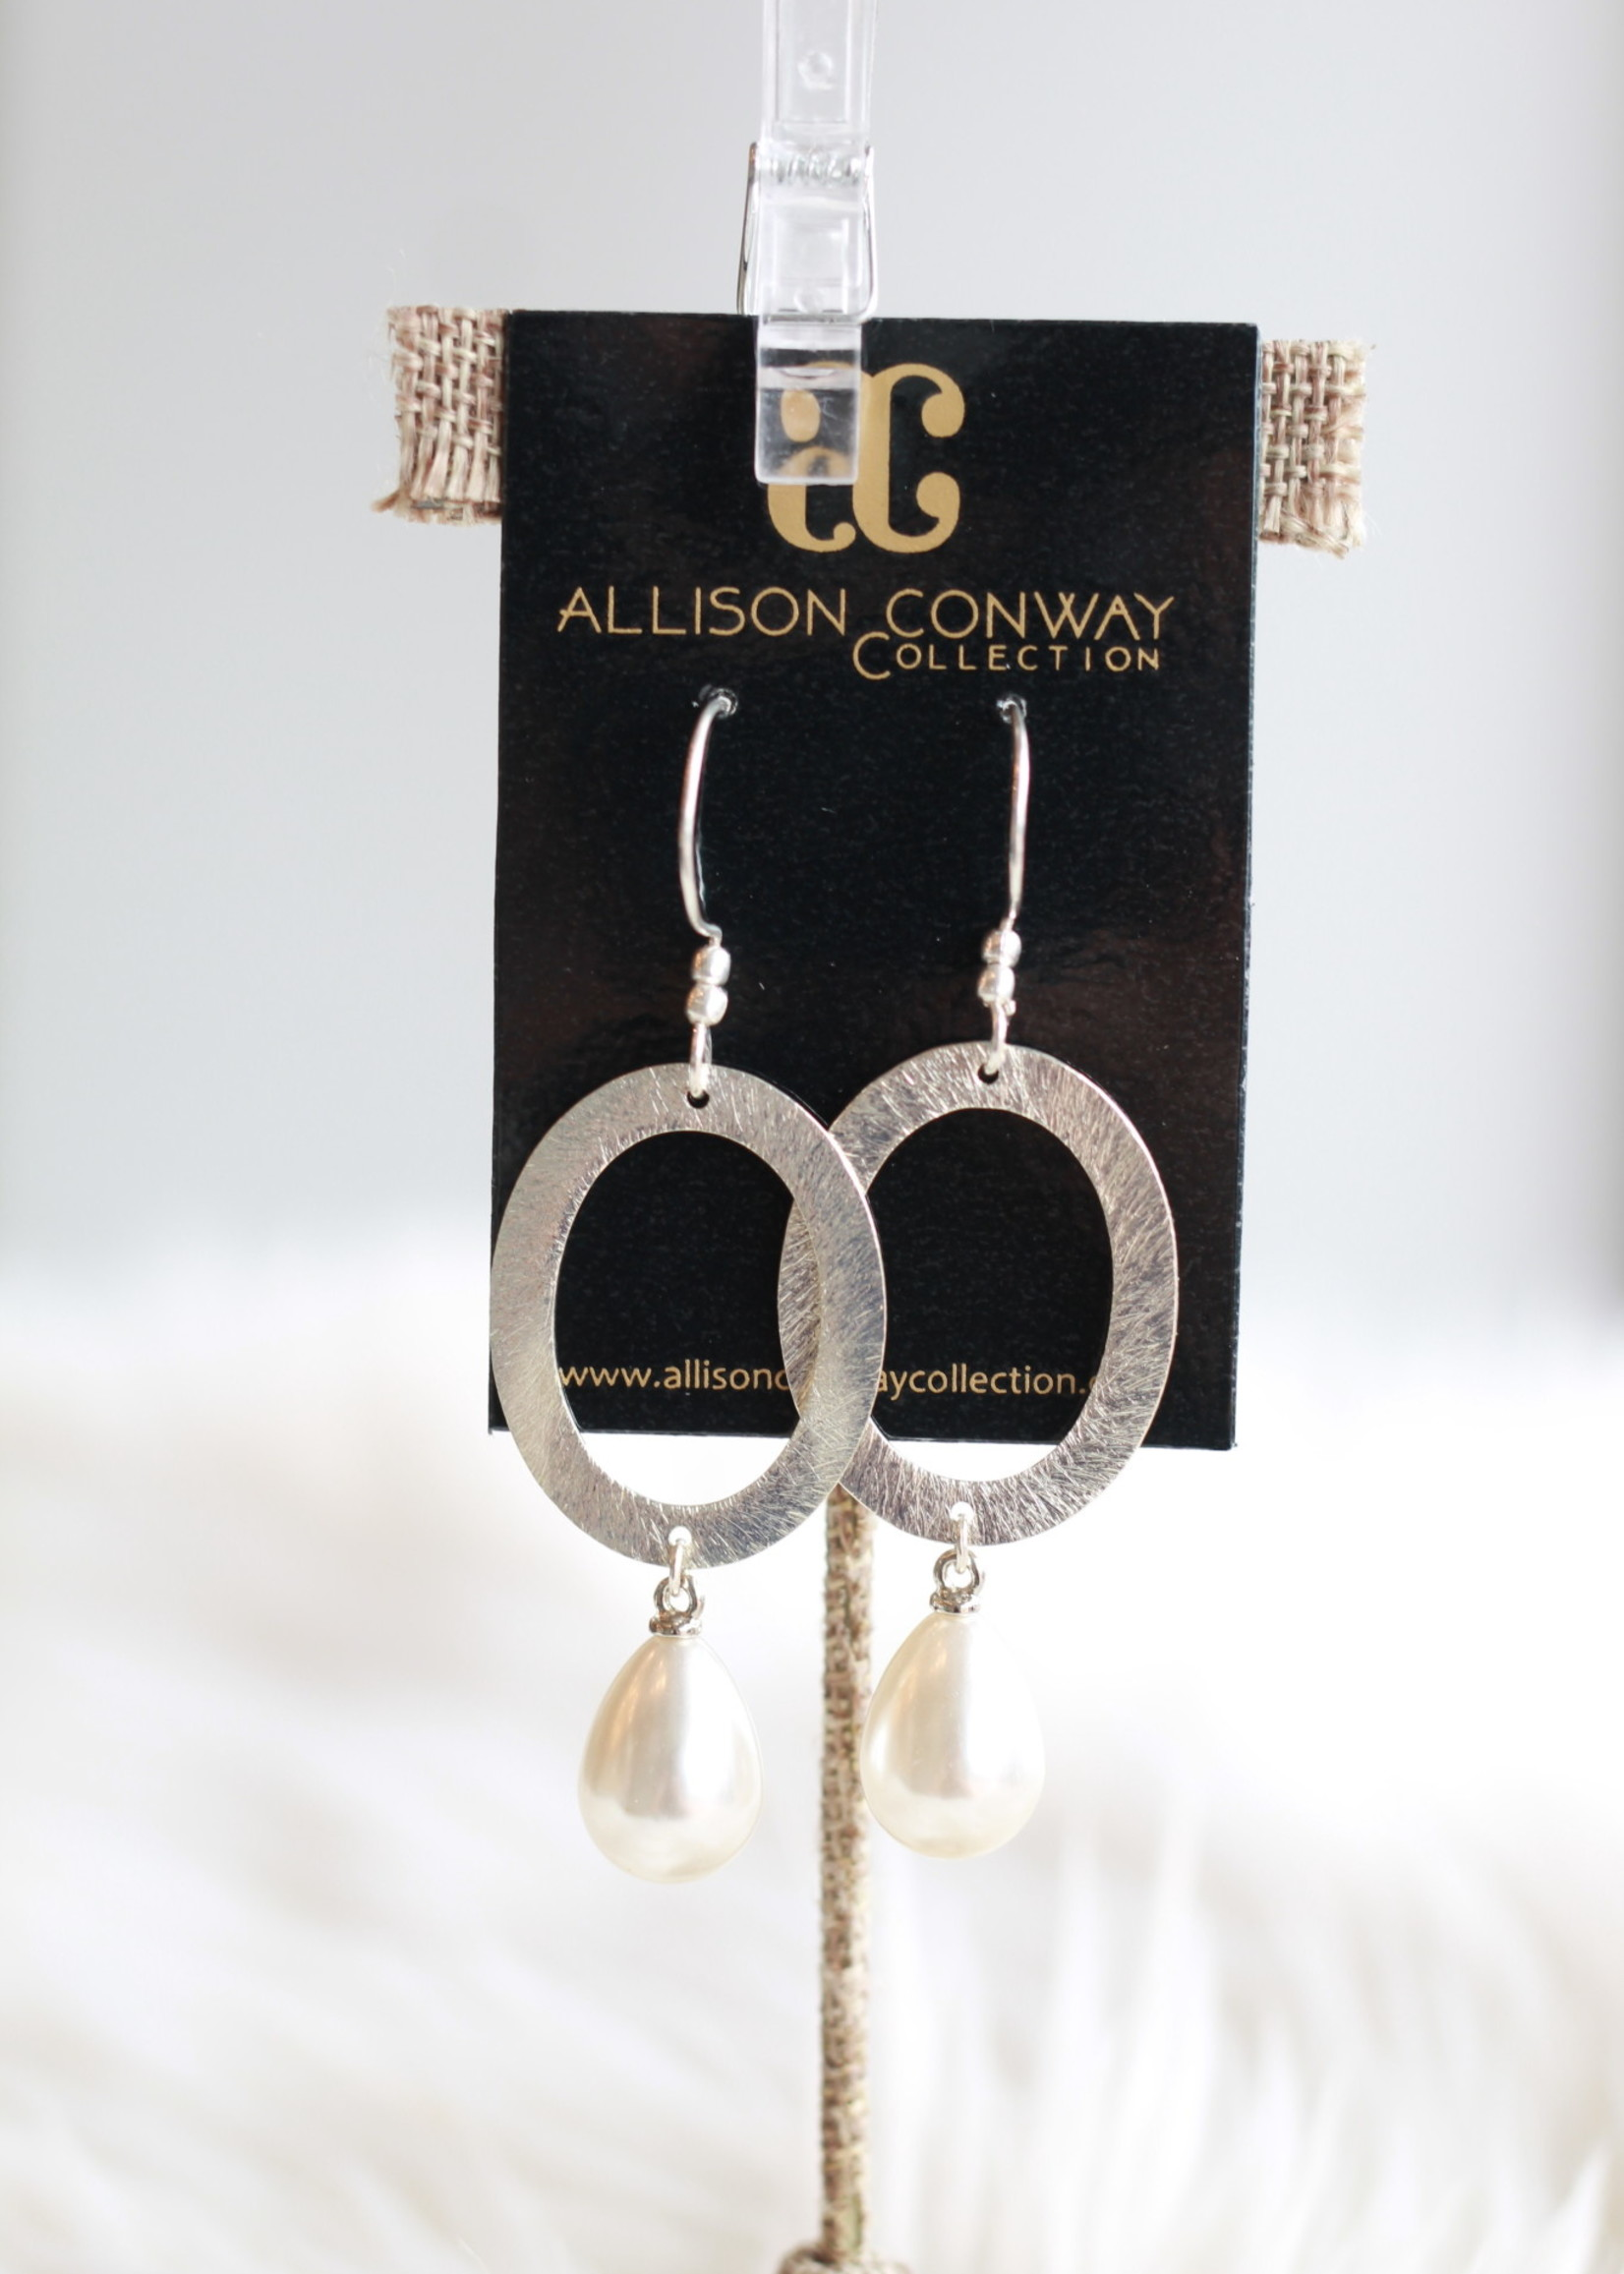 Allison Conway AC Silver Oval With Pearl Earrings